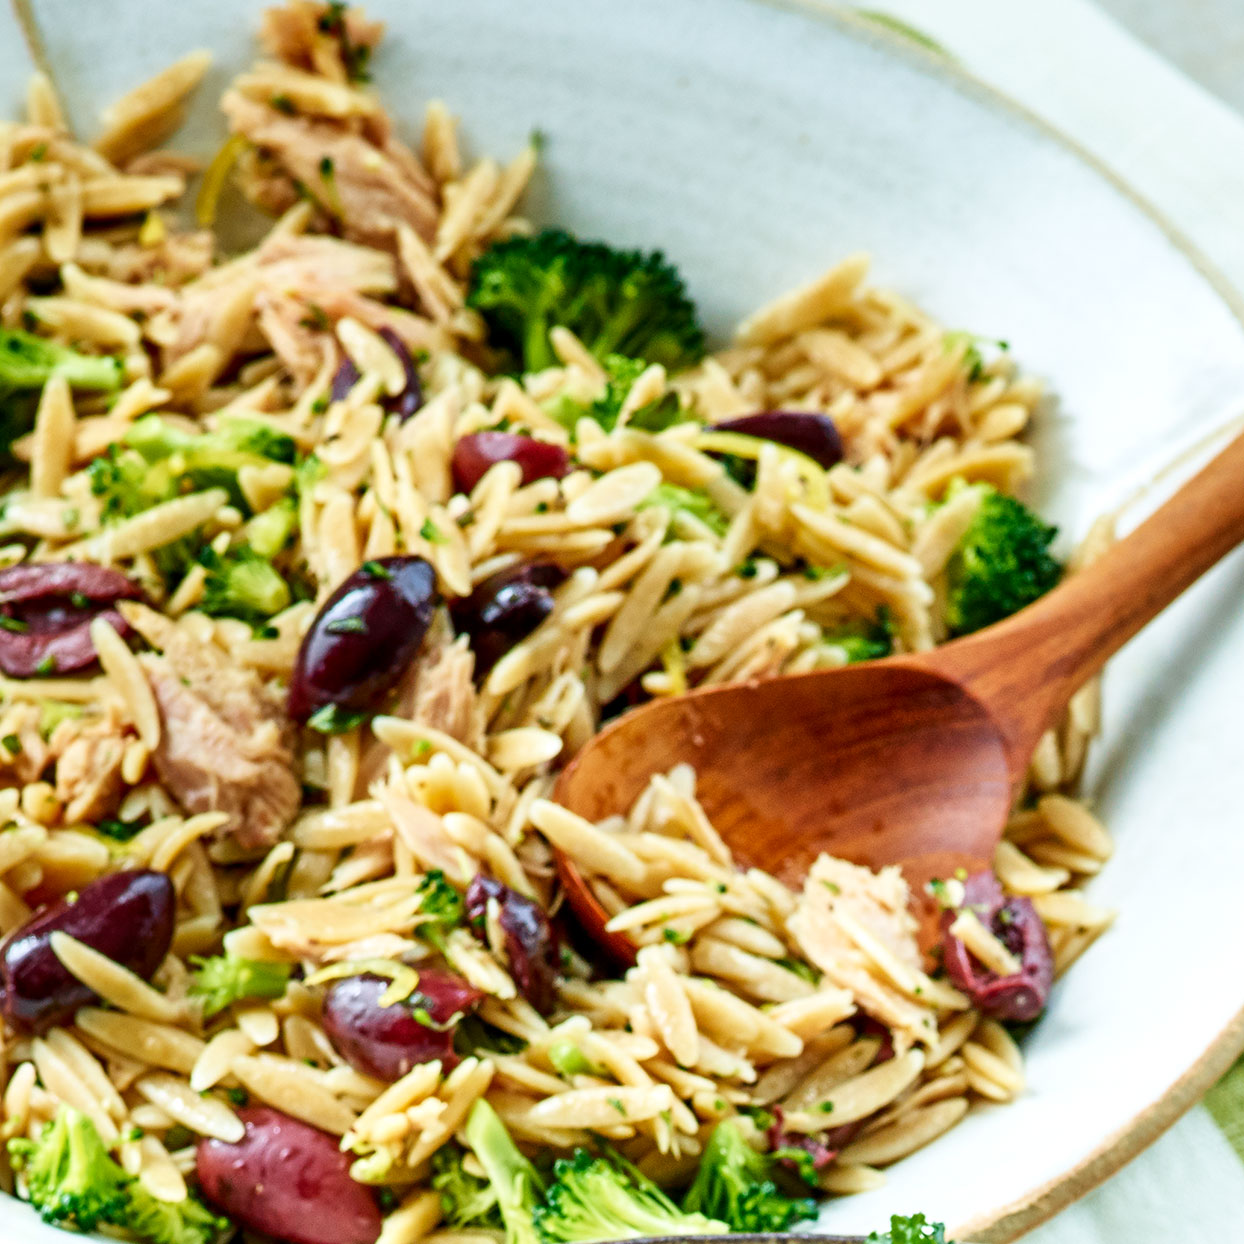 This pasta- and tuna-salad mashup gets a boost of color and texture from broccoli. Plenty of Kalamata olives add a briny bite. Be sure to monitor the pasta-cooking carefully, as orzo can go from al dente to mush in a minute. If in doubt, drain it a little early--it'll soften further in the lemon dressing. Source: EatingWell Magazine, June 2020